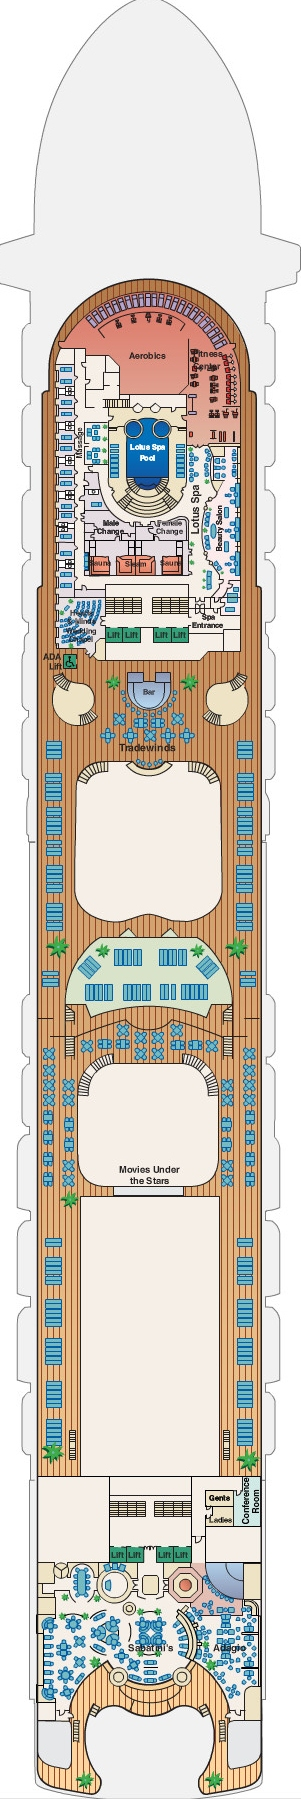 Ruby Princess Sun Deck 16 layout